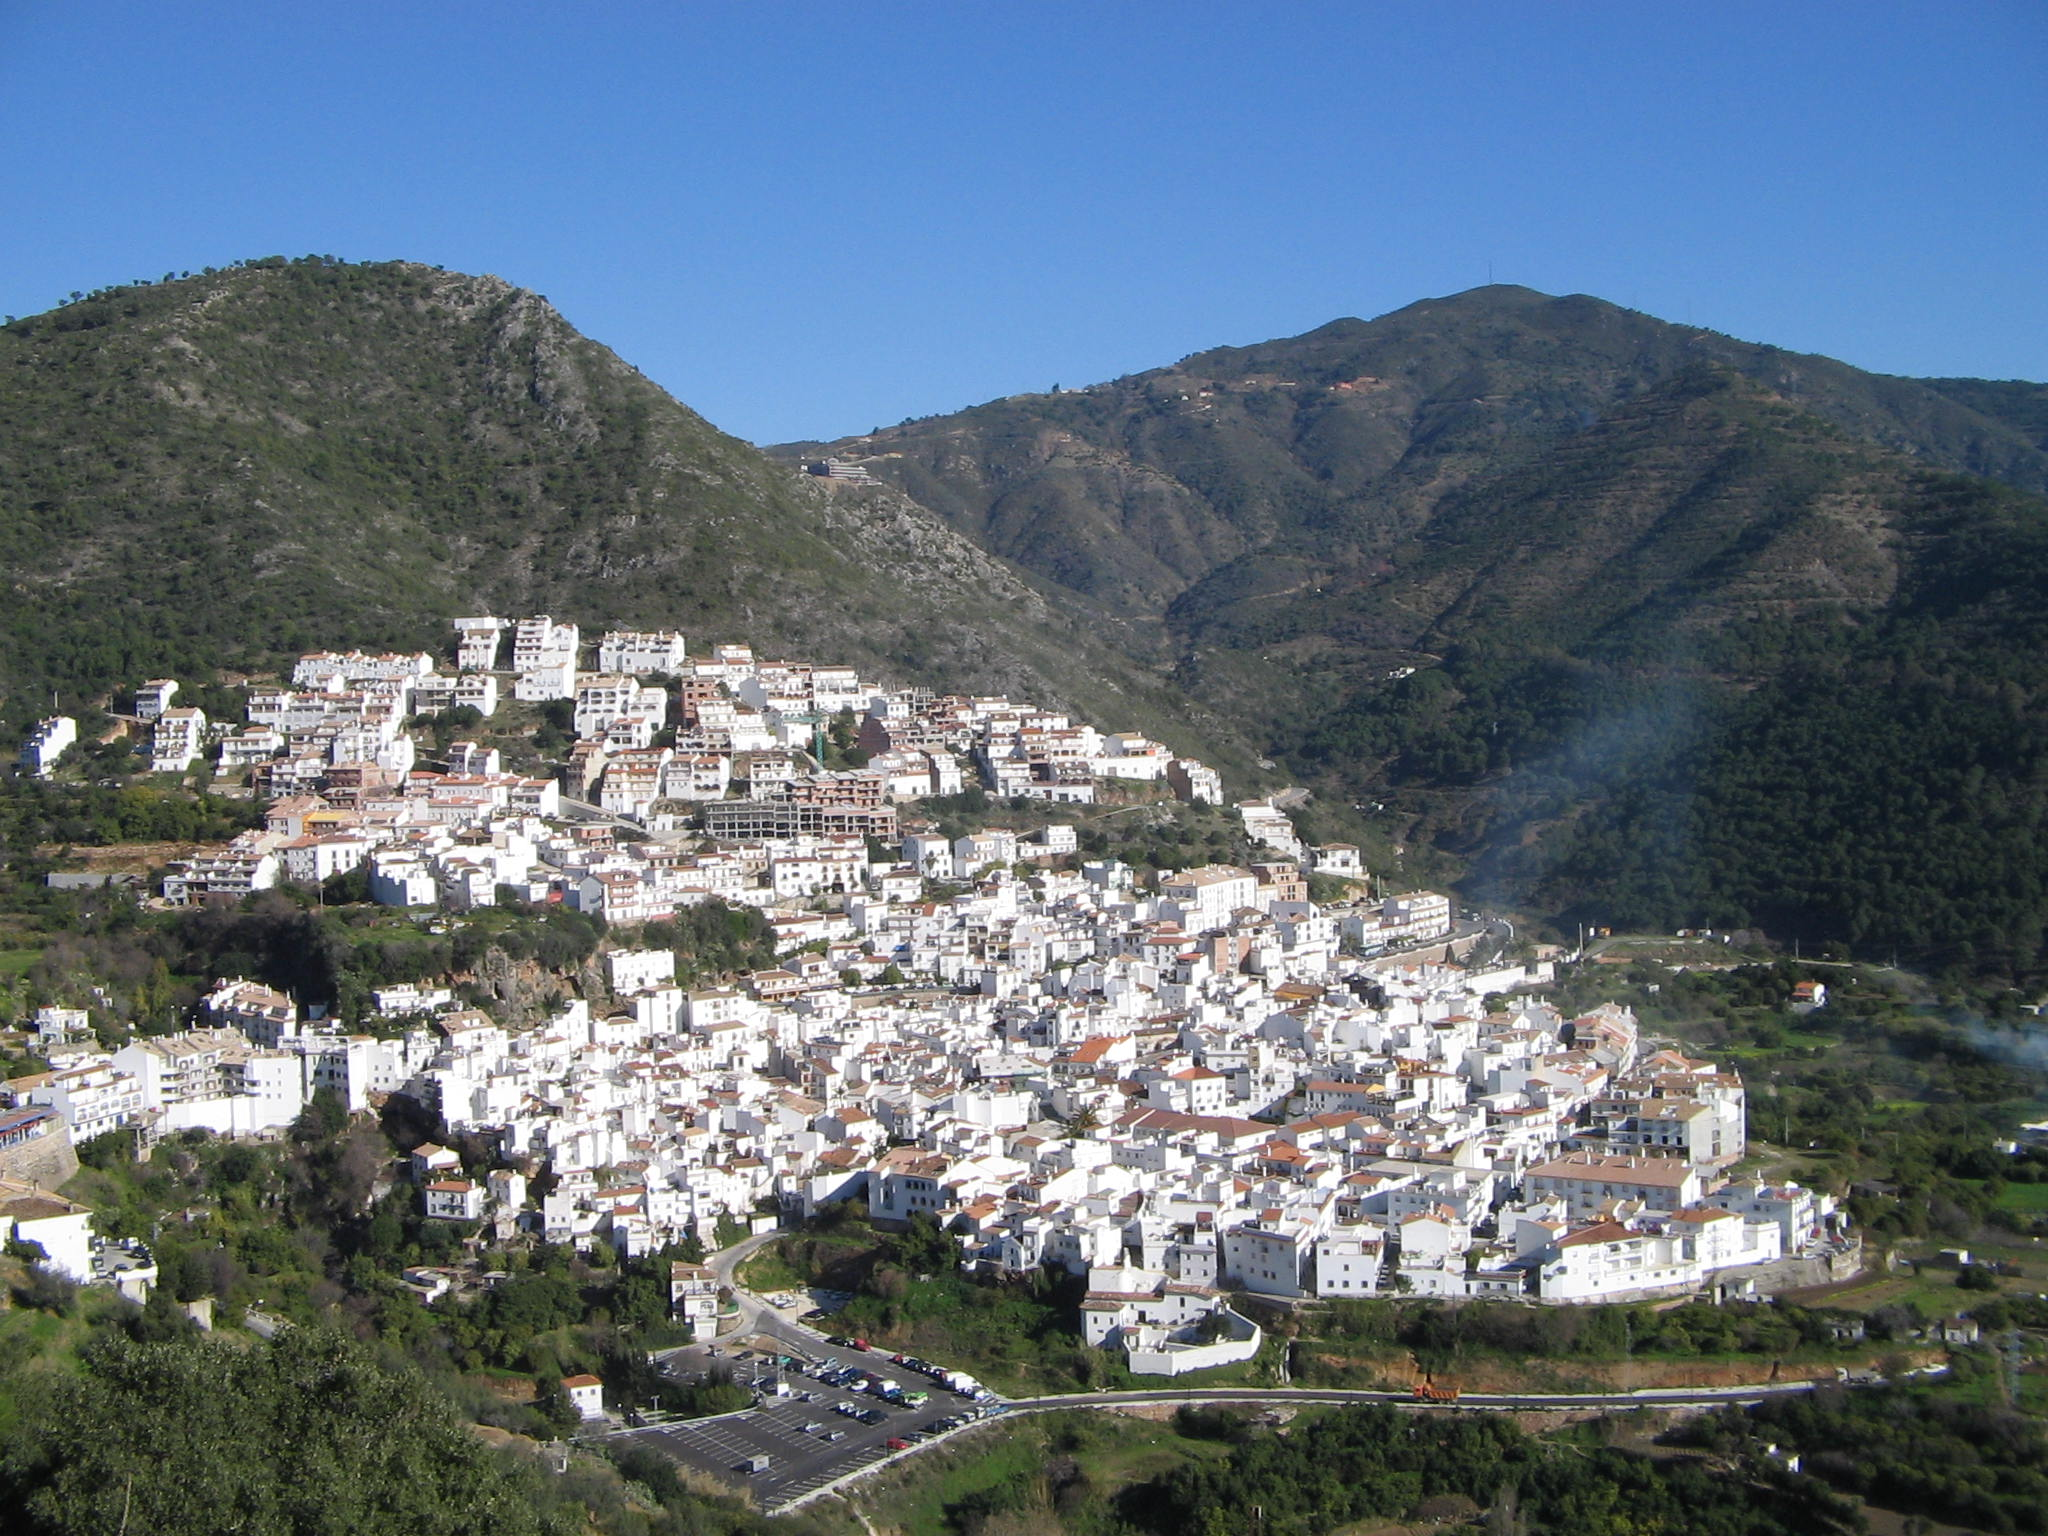 File:Village in Andalusia, Spain 2005.jpg - Wikimedia Commons